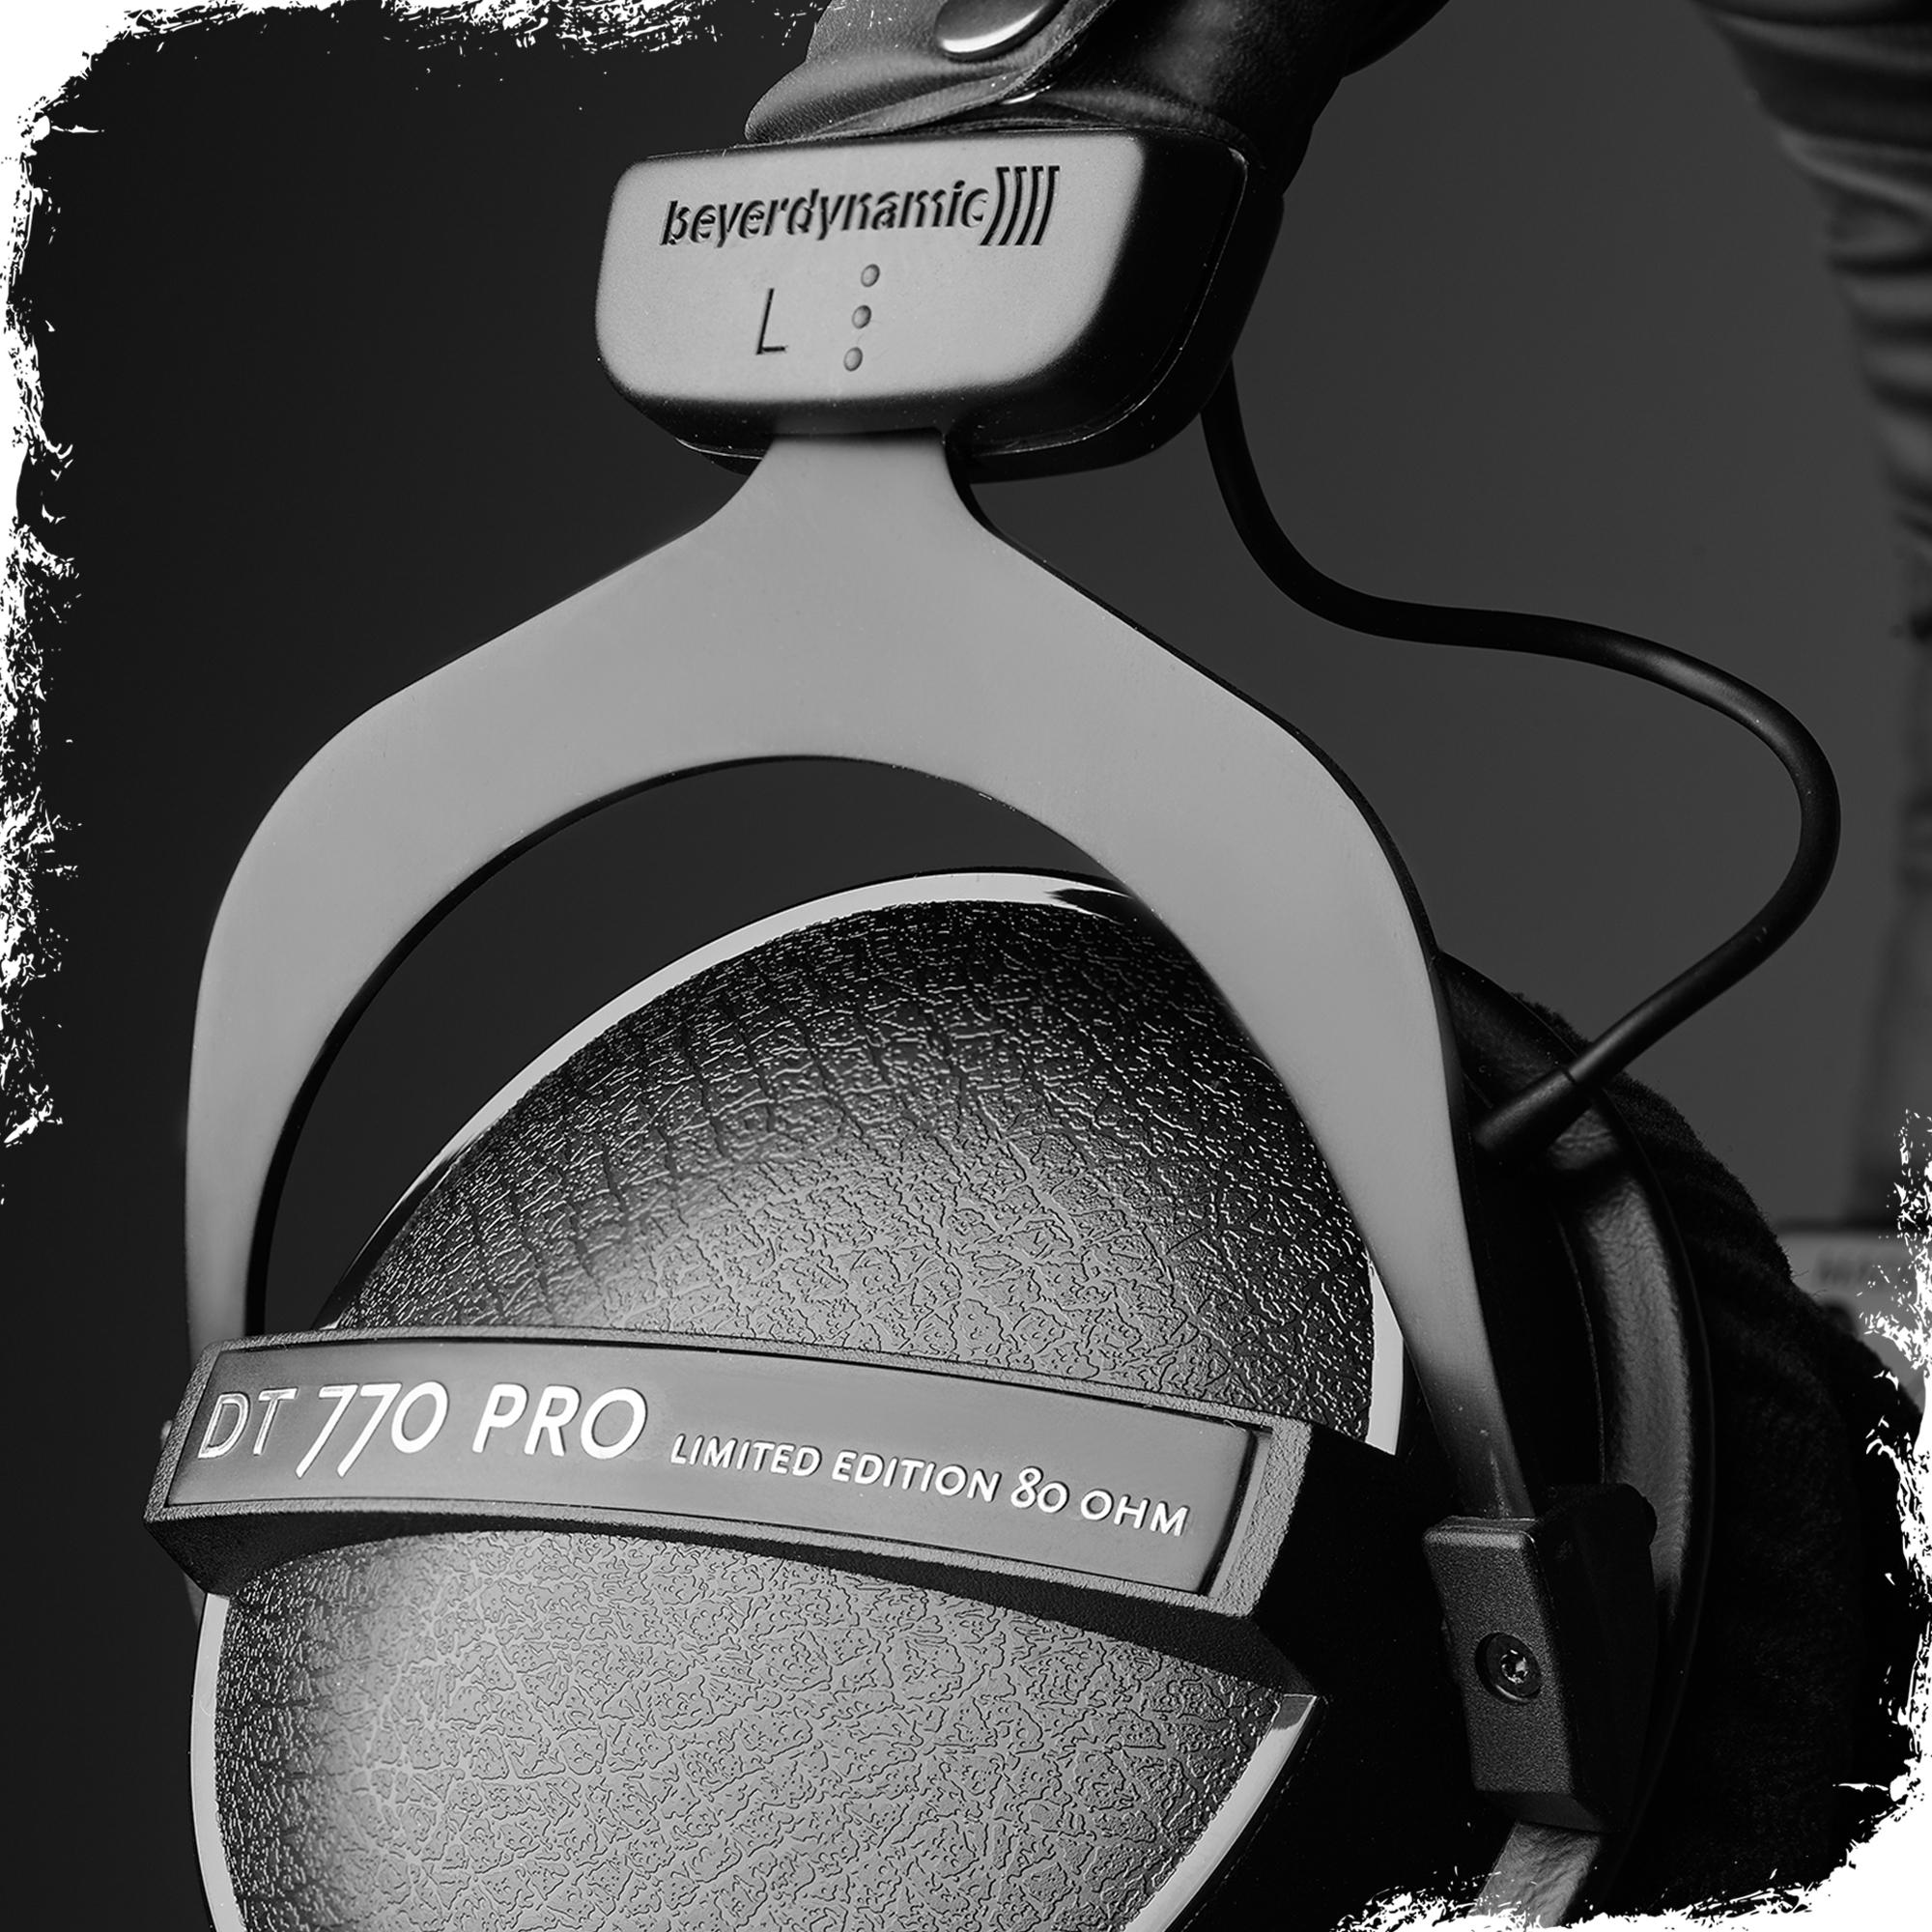 beyerdynamic dt 770 pro 80 ohm black limited edition studio headphones musical. Black Bedroom Furniture Sets. Home Design Ideas